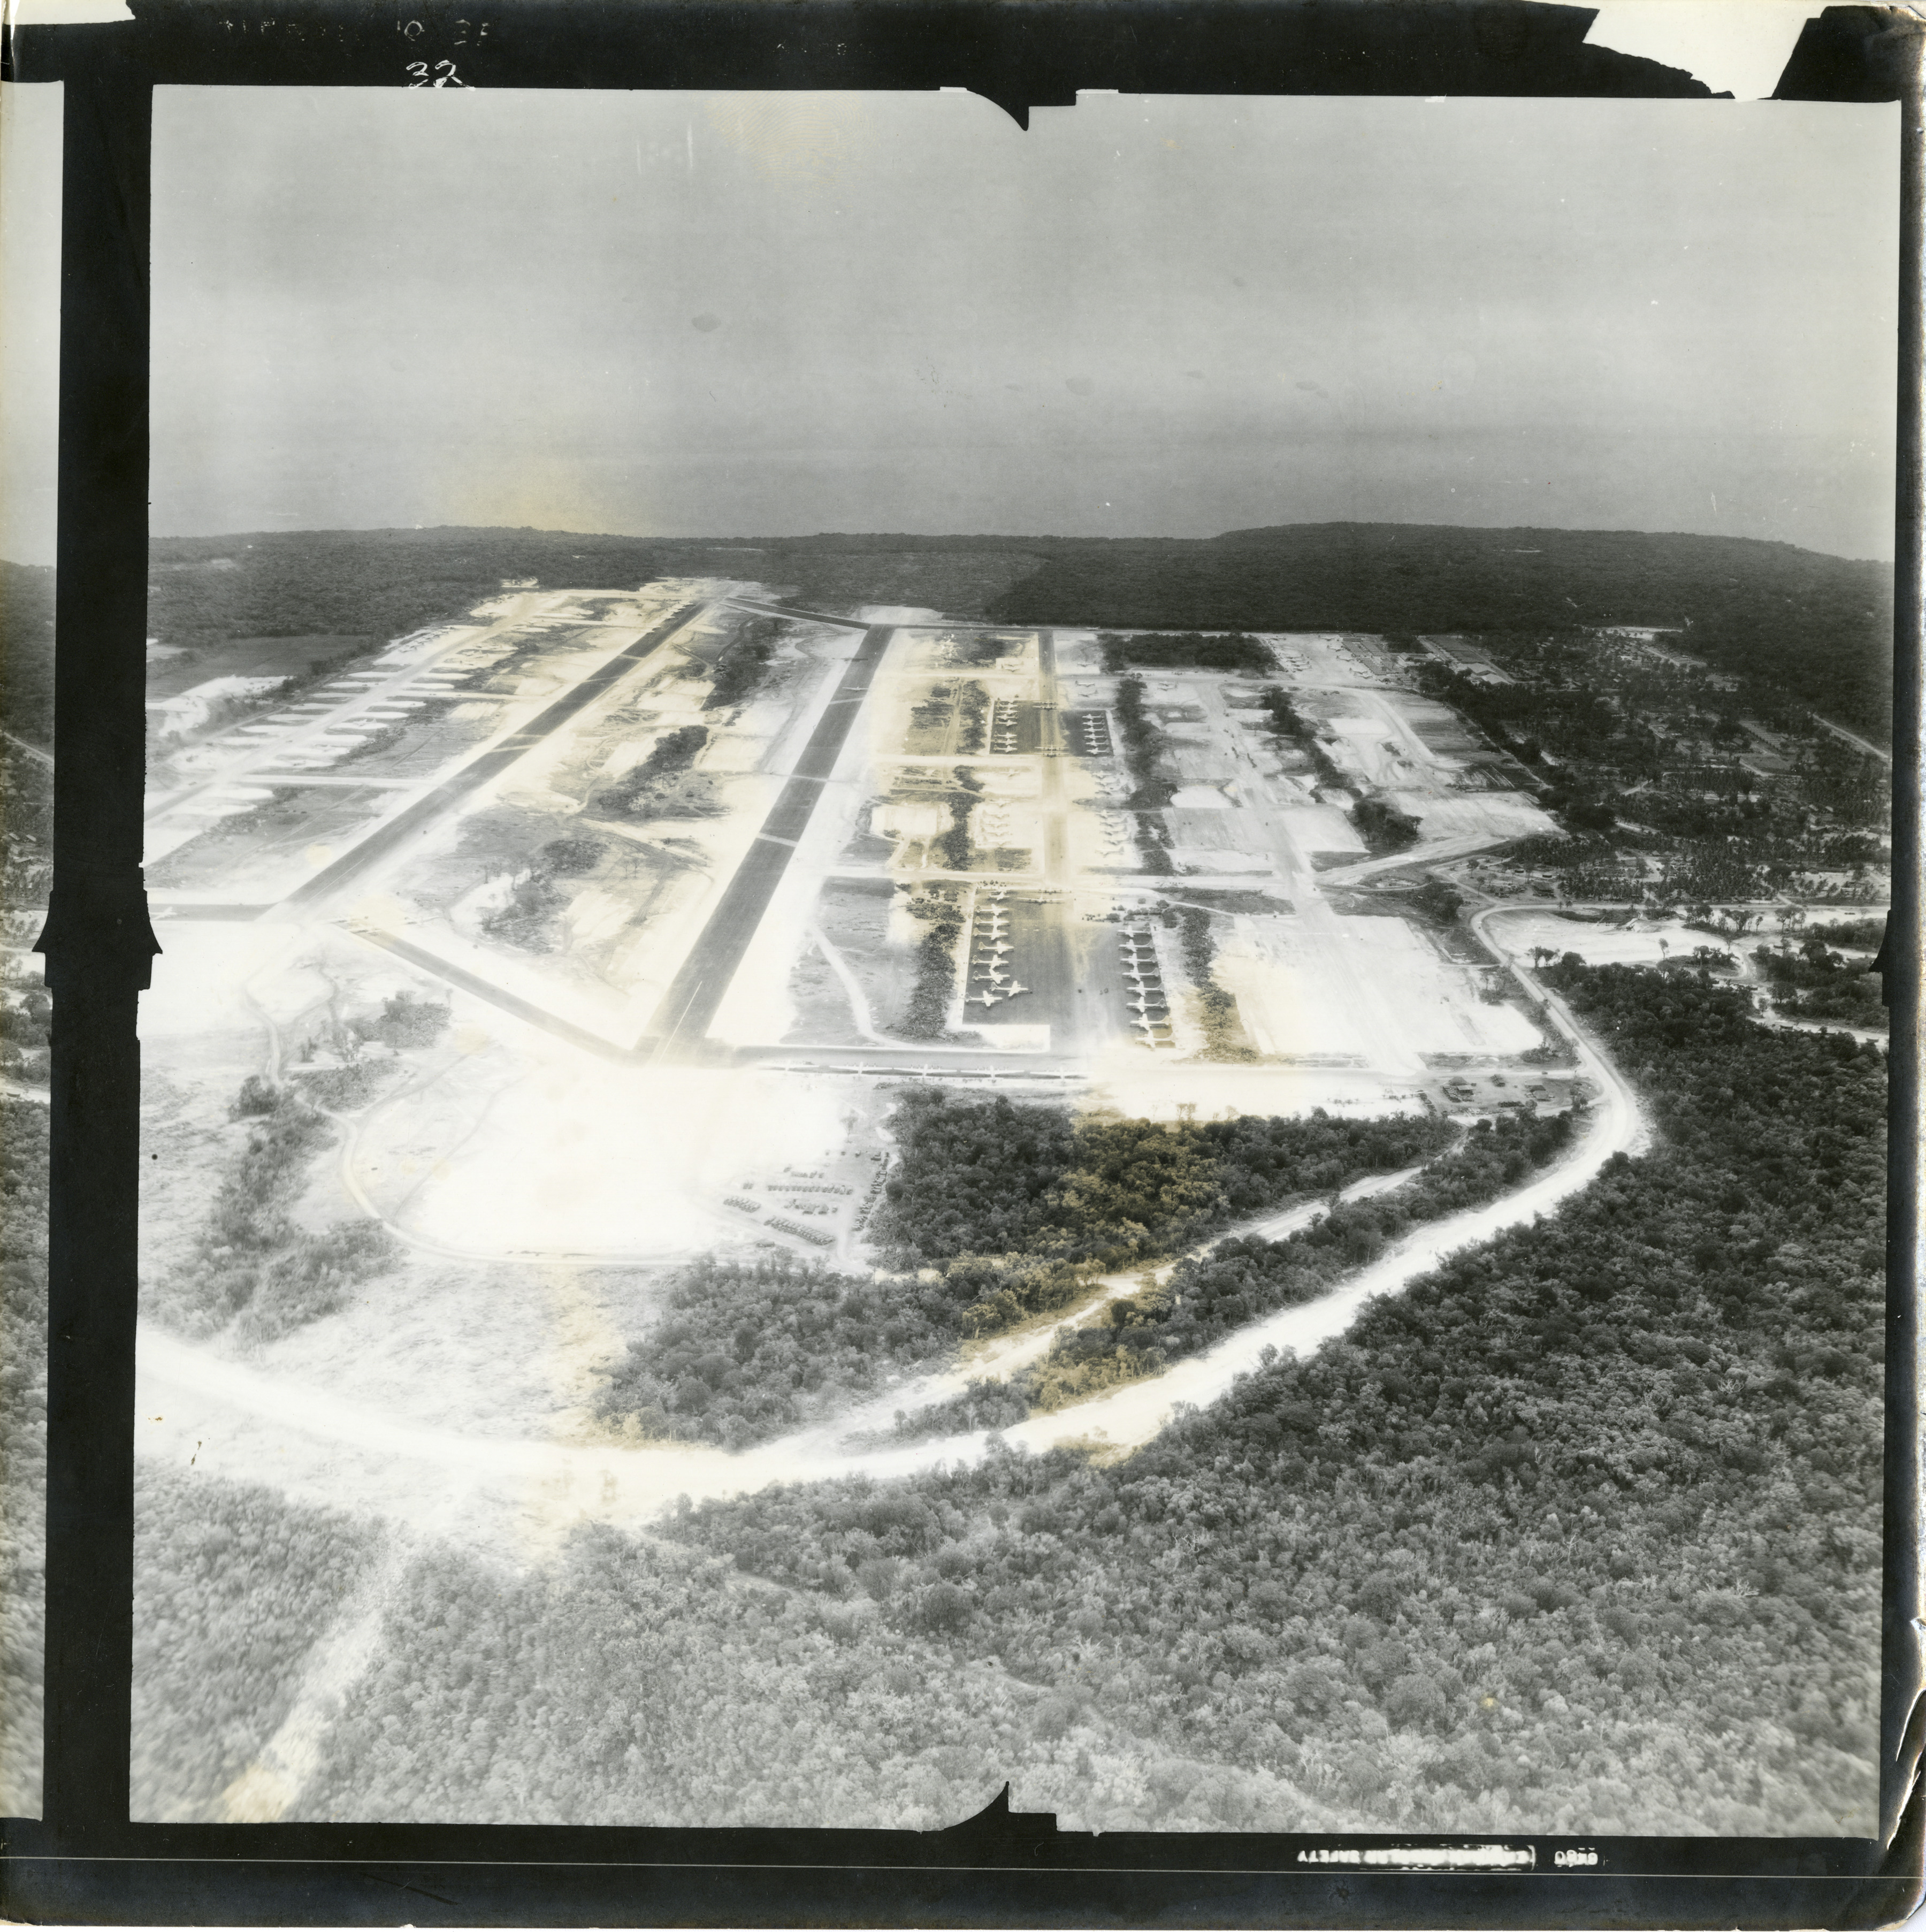 Aerial photograph of Anderson Air Force Base (probably) on